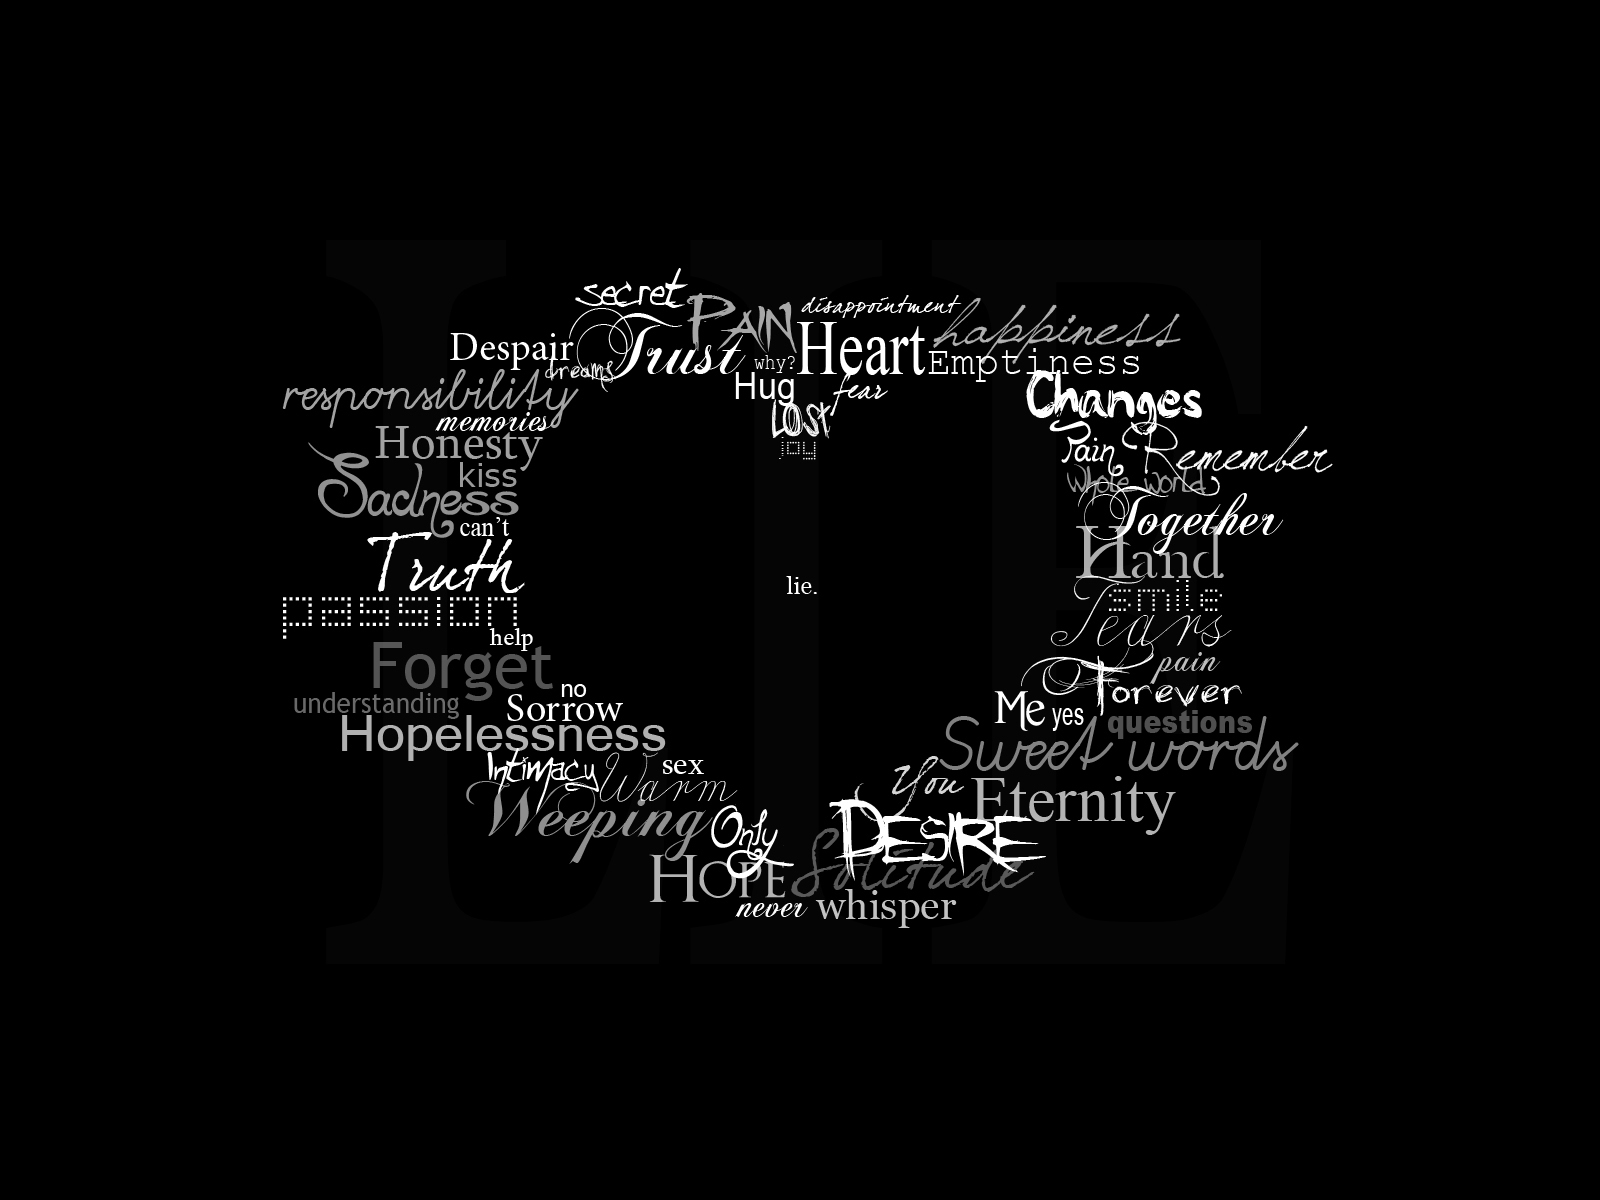 Words, HD Wallpapers For Free | BsnSCB Gallery